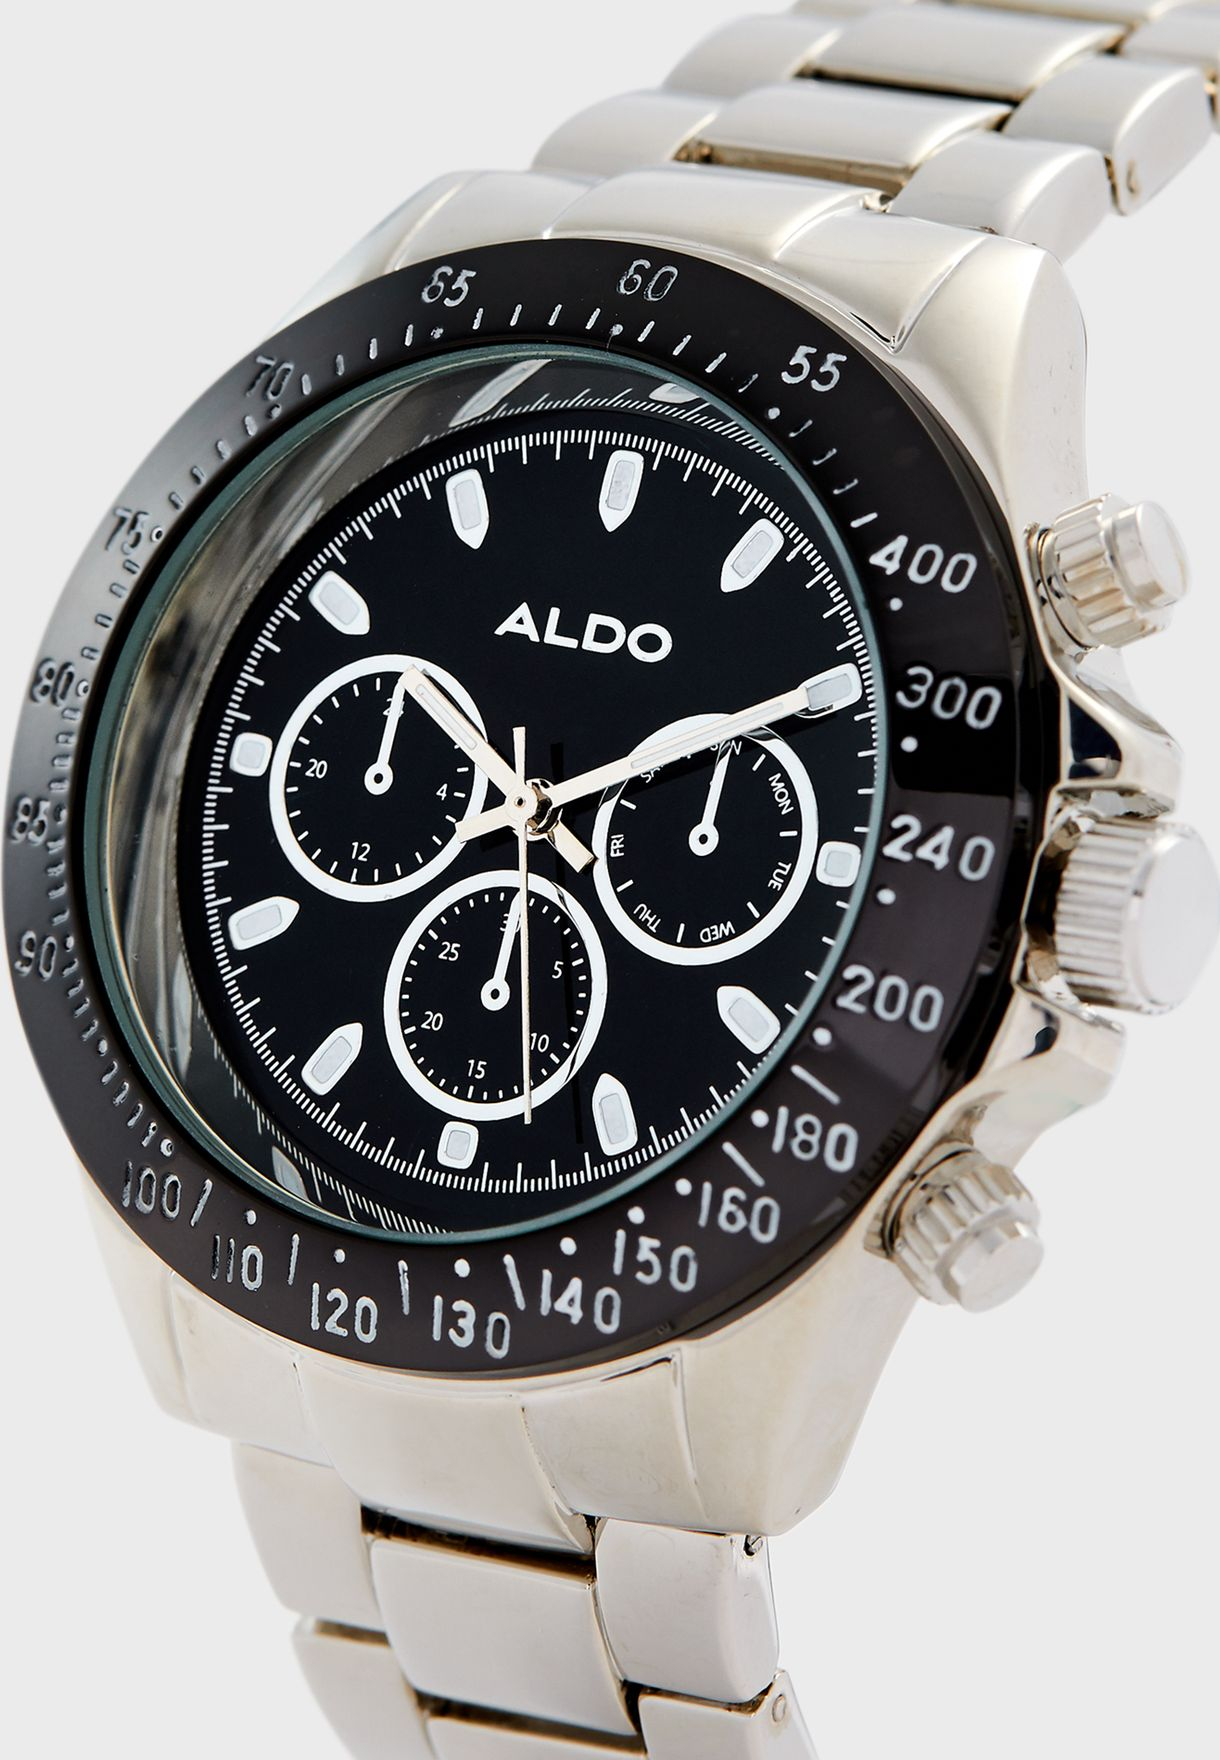 Karloning Chronograph Analog Watch